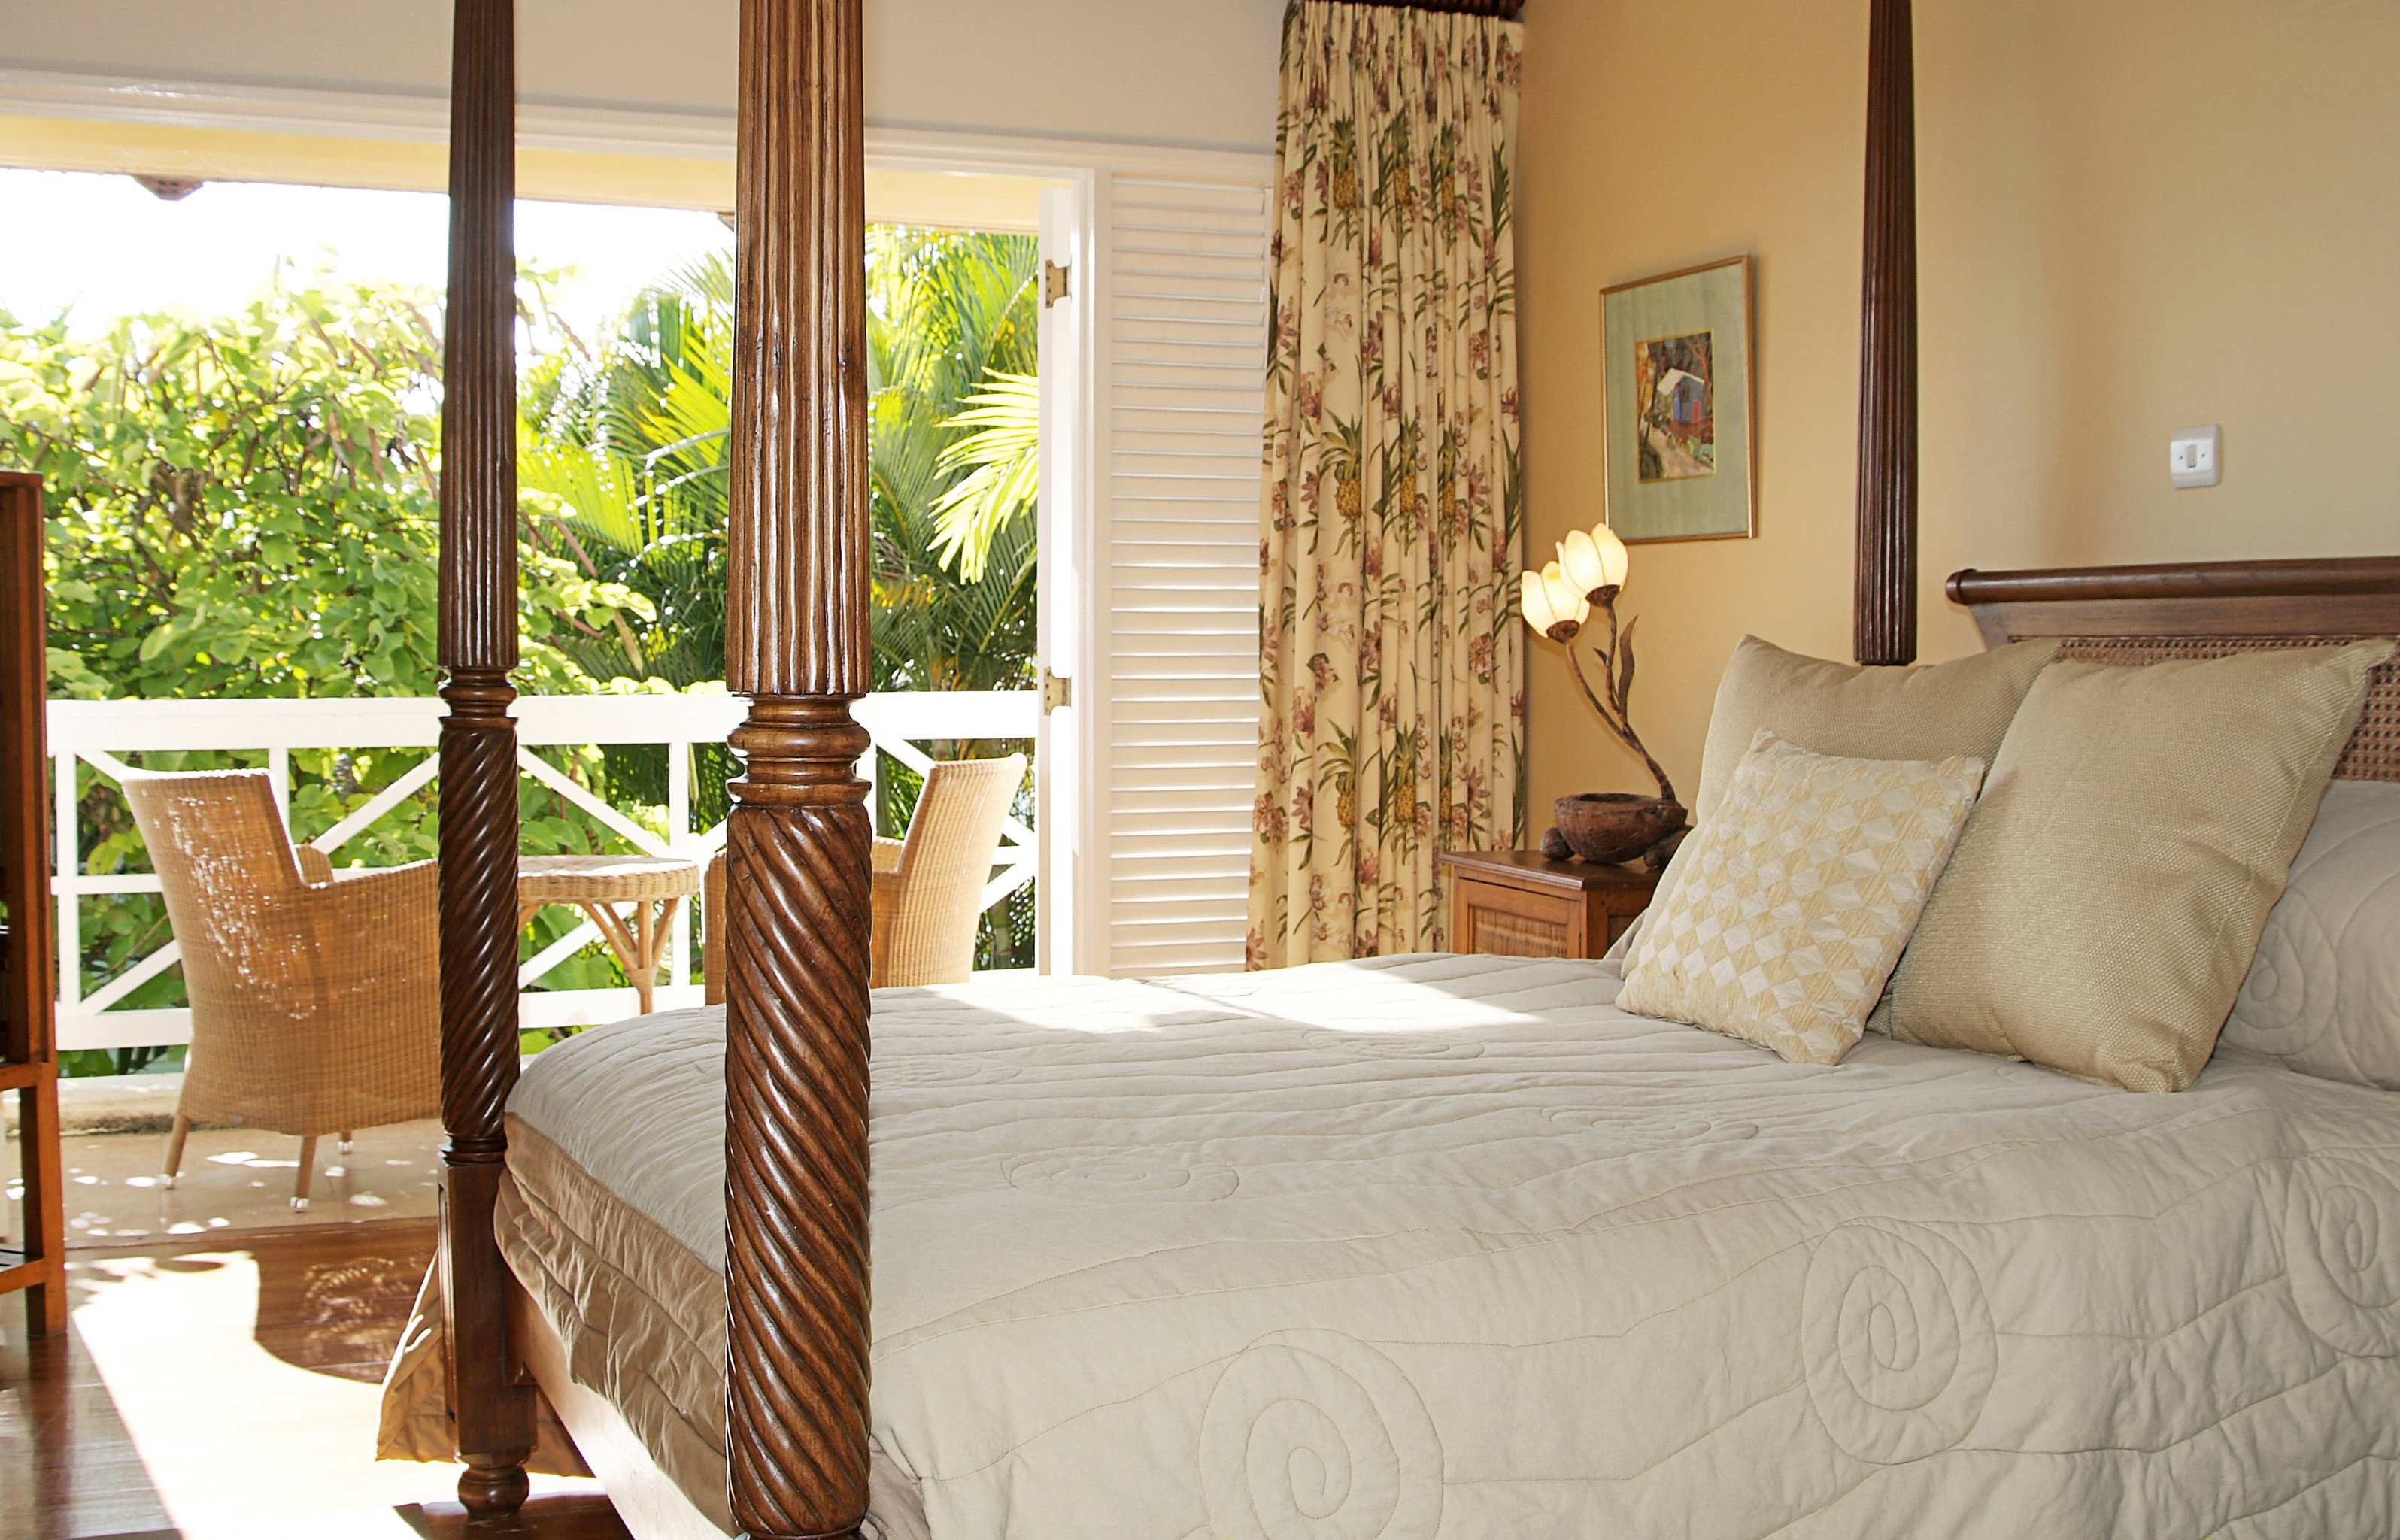 Bedroom Luxury Patio Suite Tropical property cottage home bed sheet